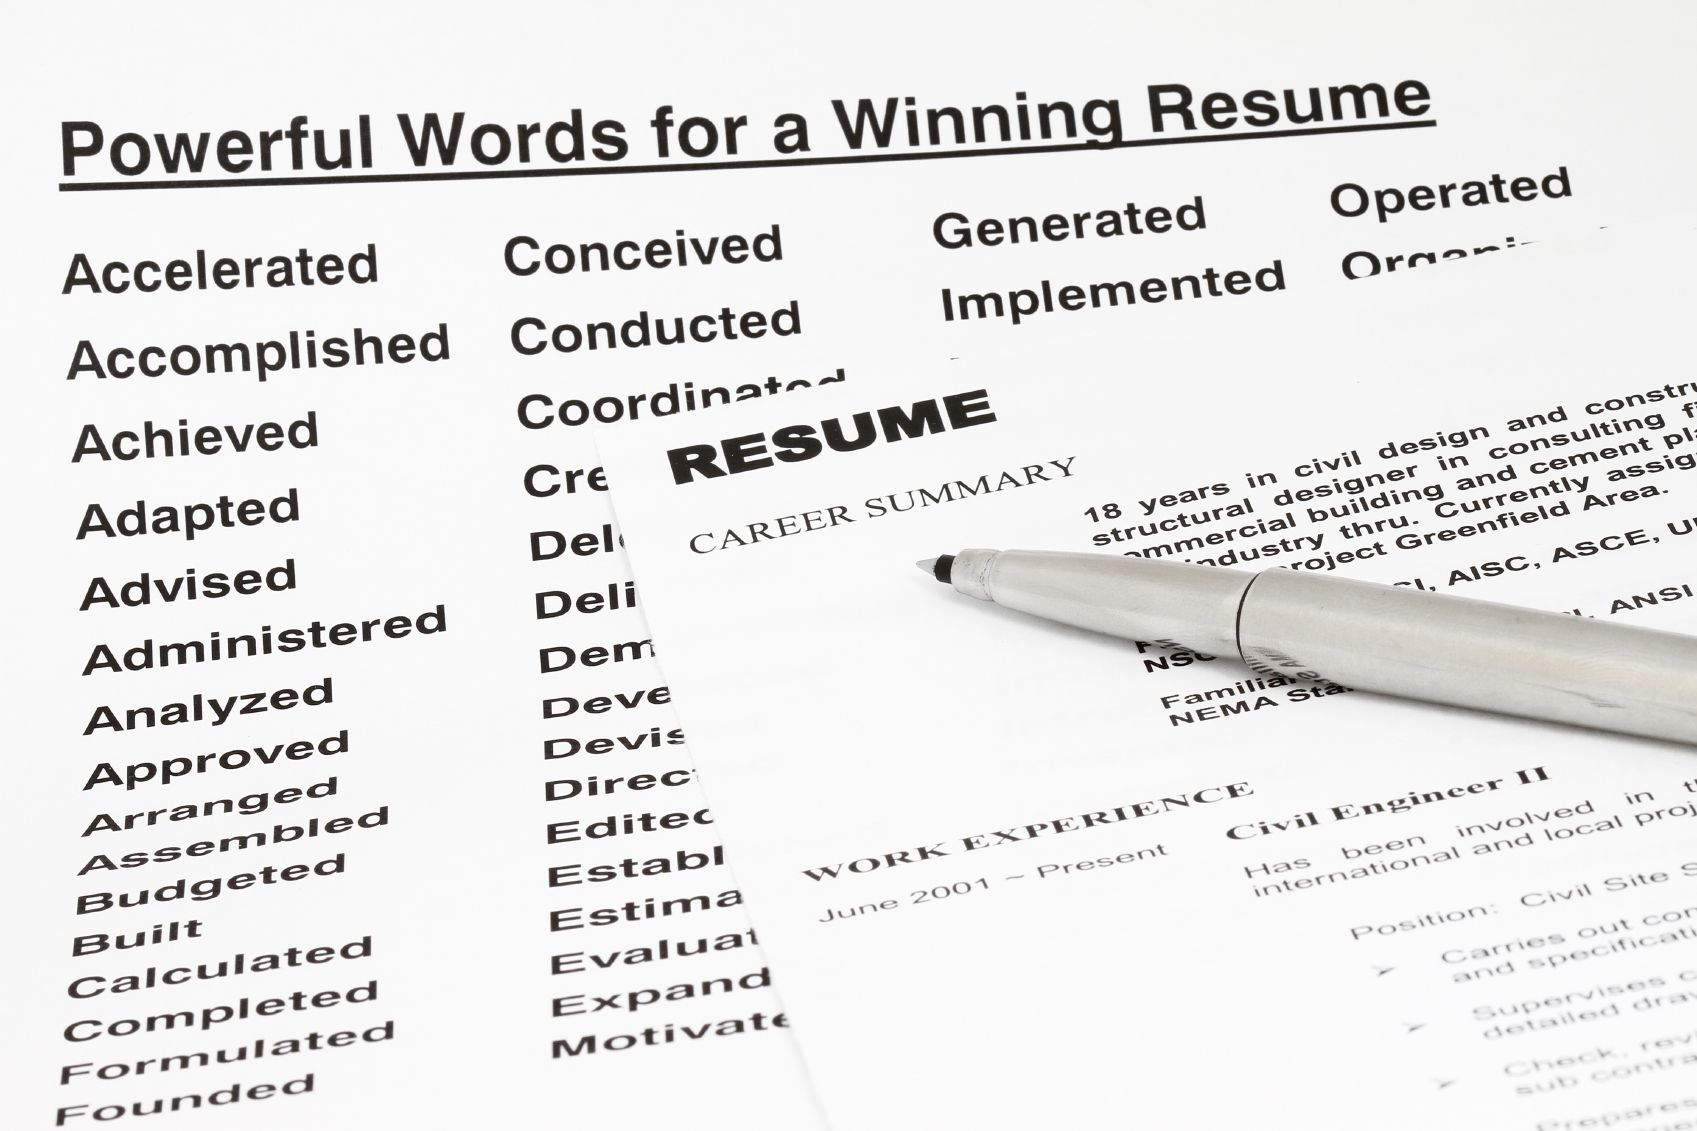 Resume Keywords And Tips For Using Them